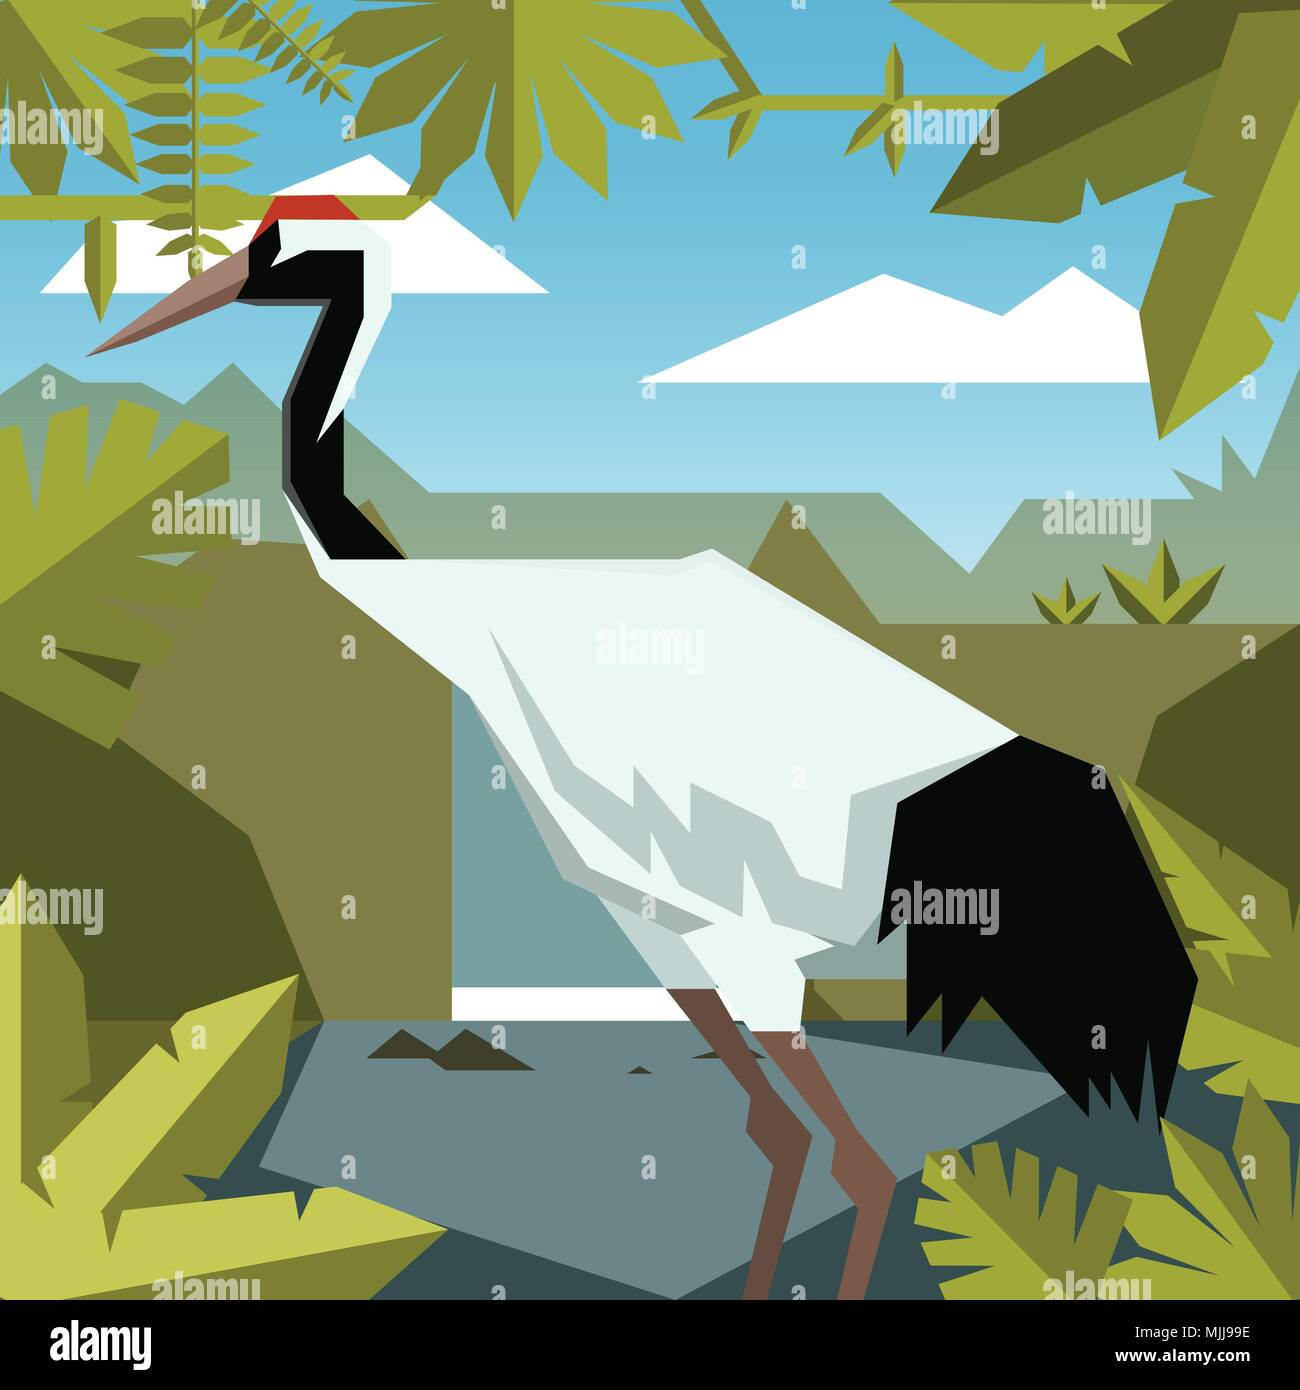 Flat Jungle Background With Red Crowned Crane Stock Vector Image Art Alamy Want to discover art related to red_crowned_crane? alamy